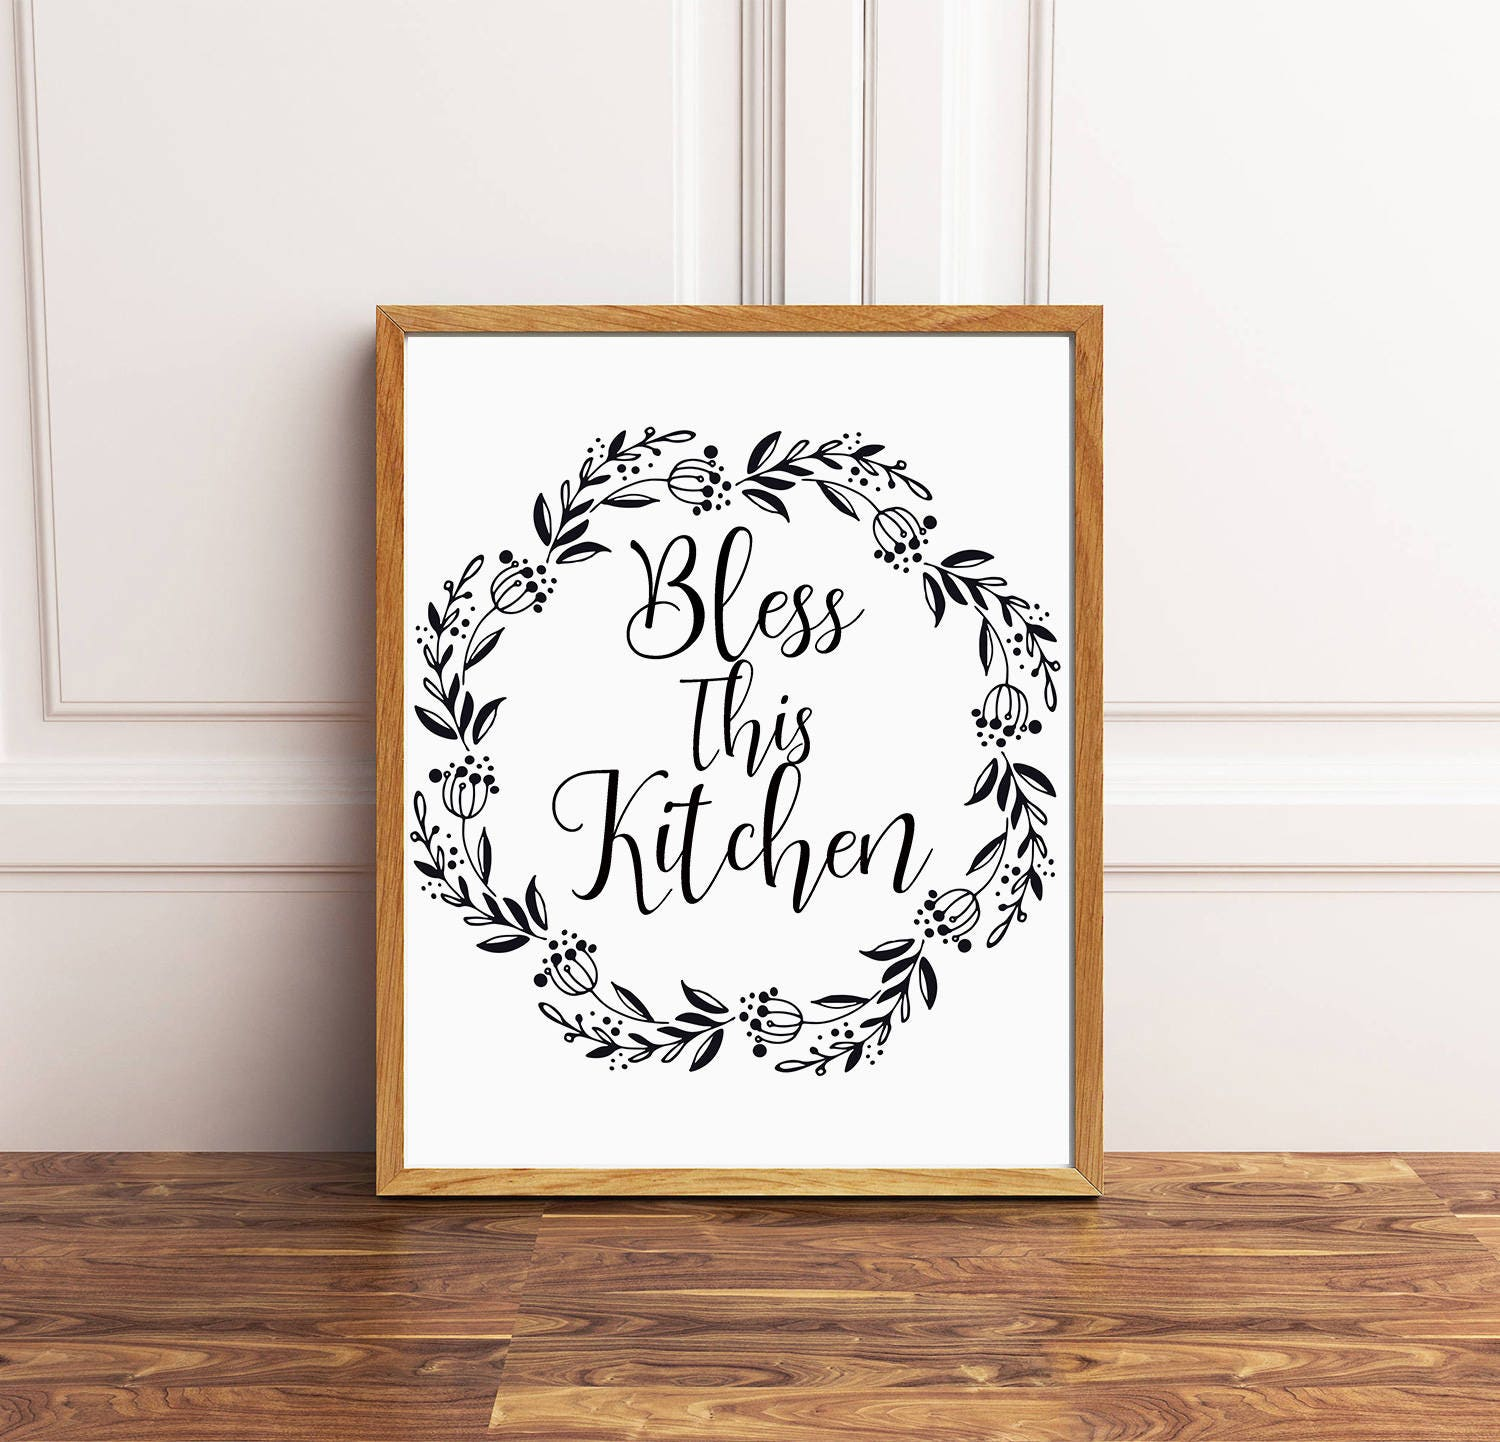 Decorative Kitchen Accessories Uk: Bless This Kitchen Kitchen Wall Decor Kitchen Print